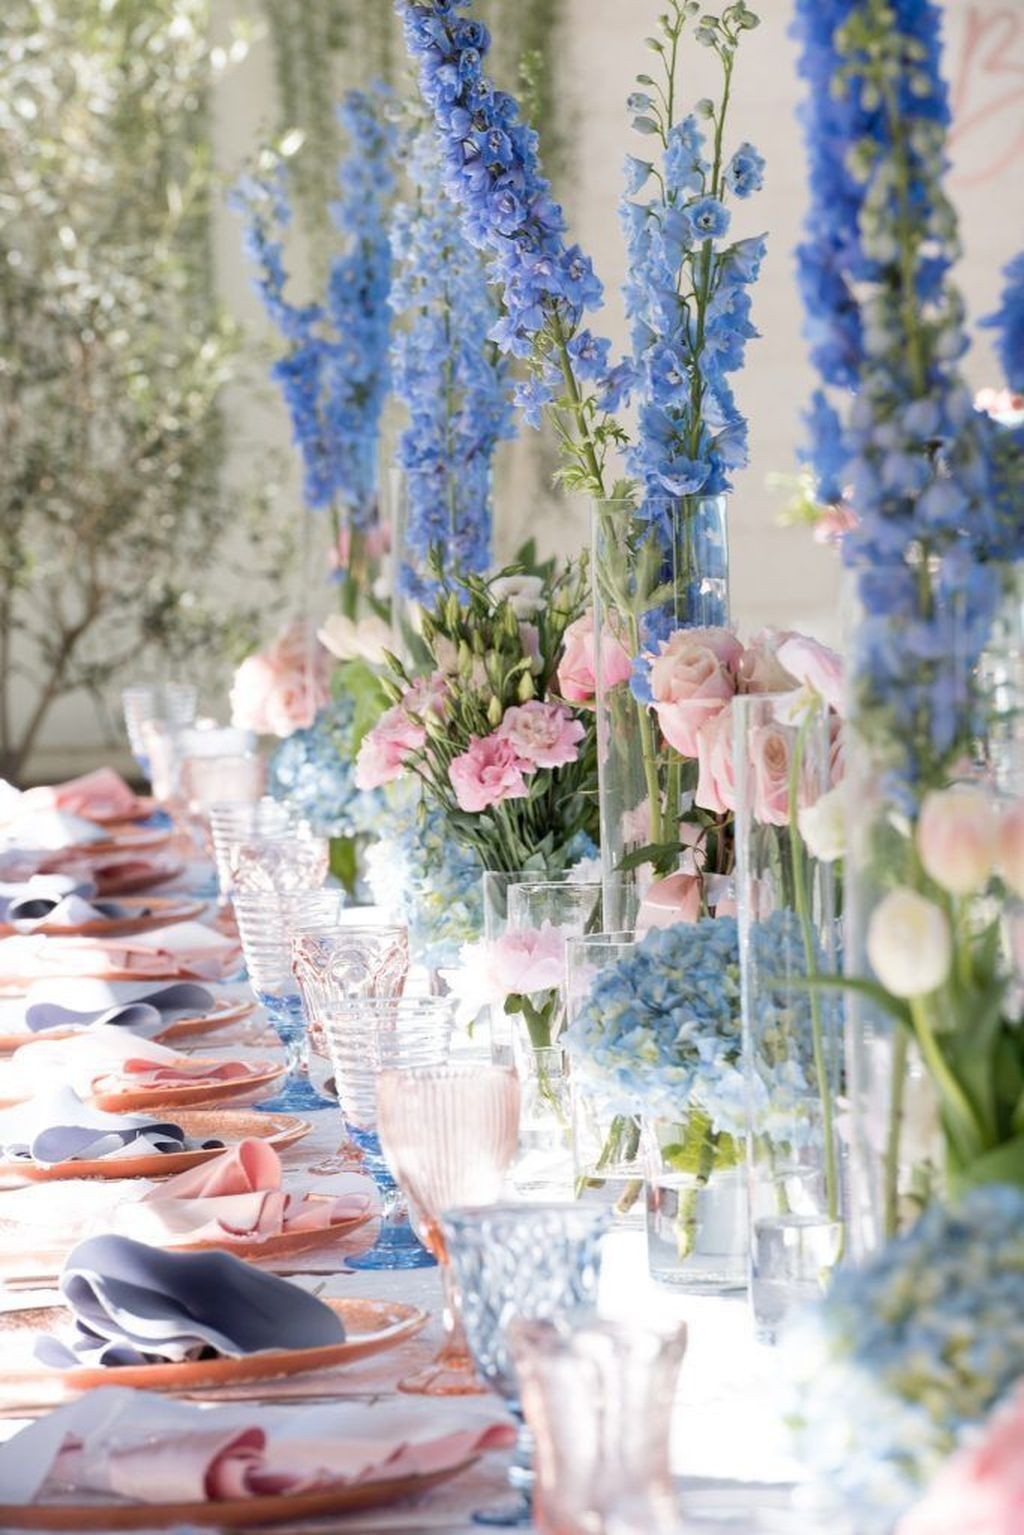 Fabulous Floral Theme Party Decor Ideas Best For Summertime 12